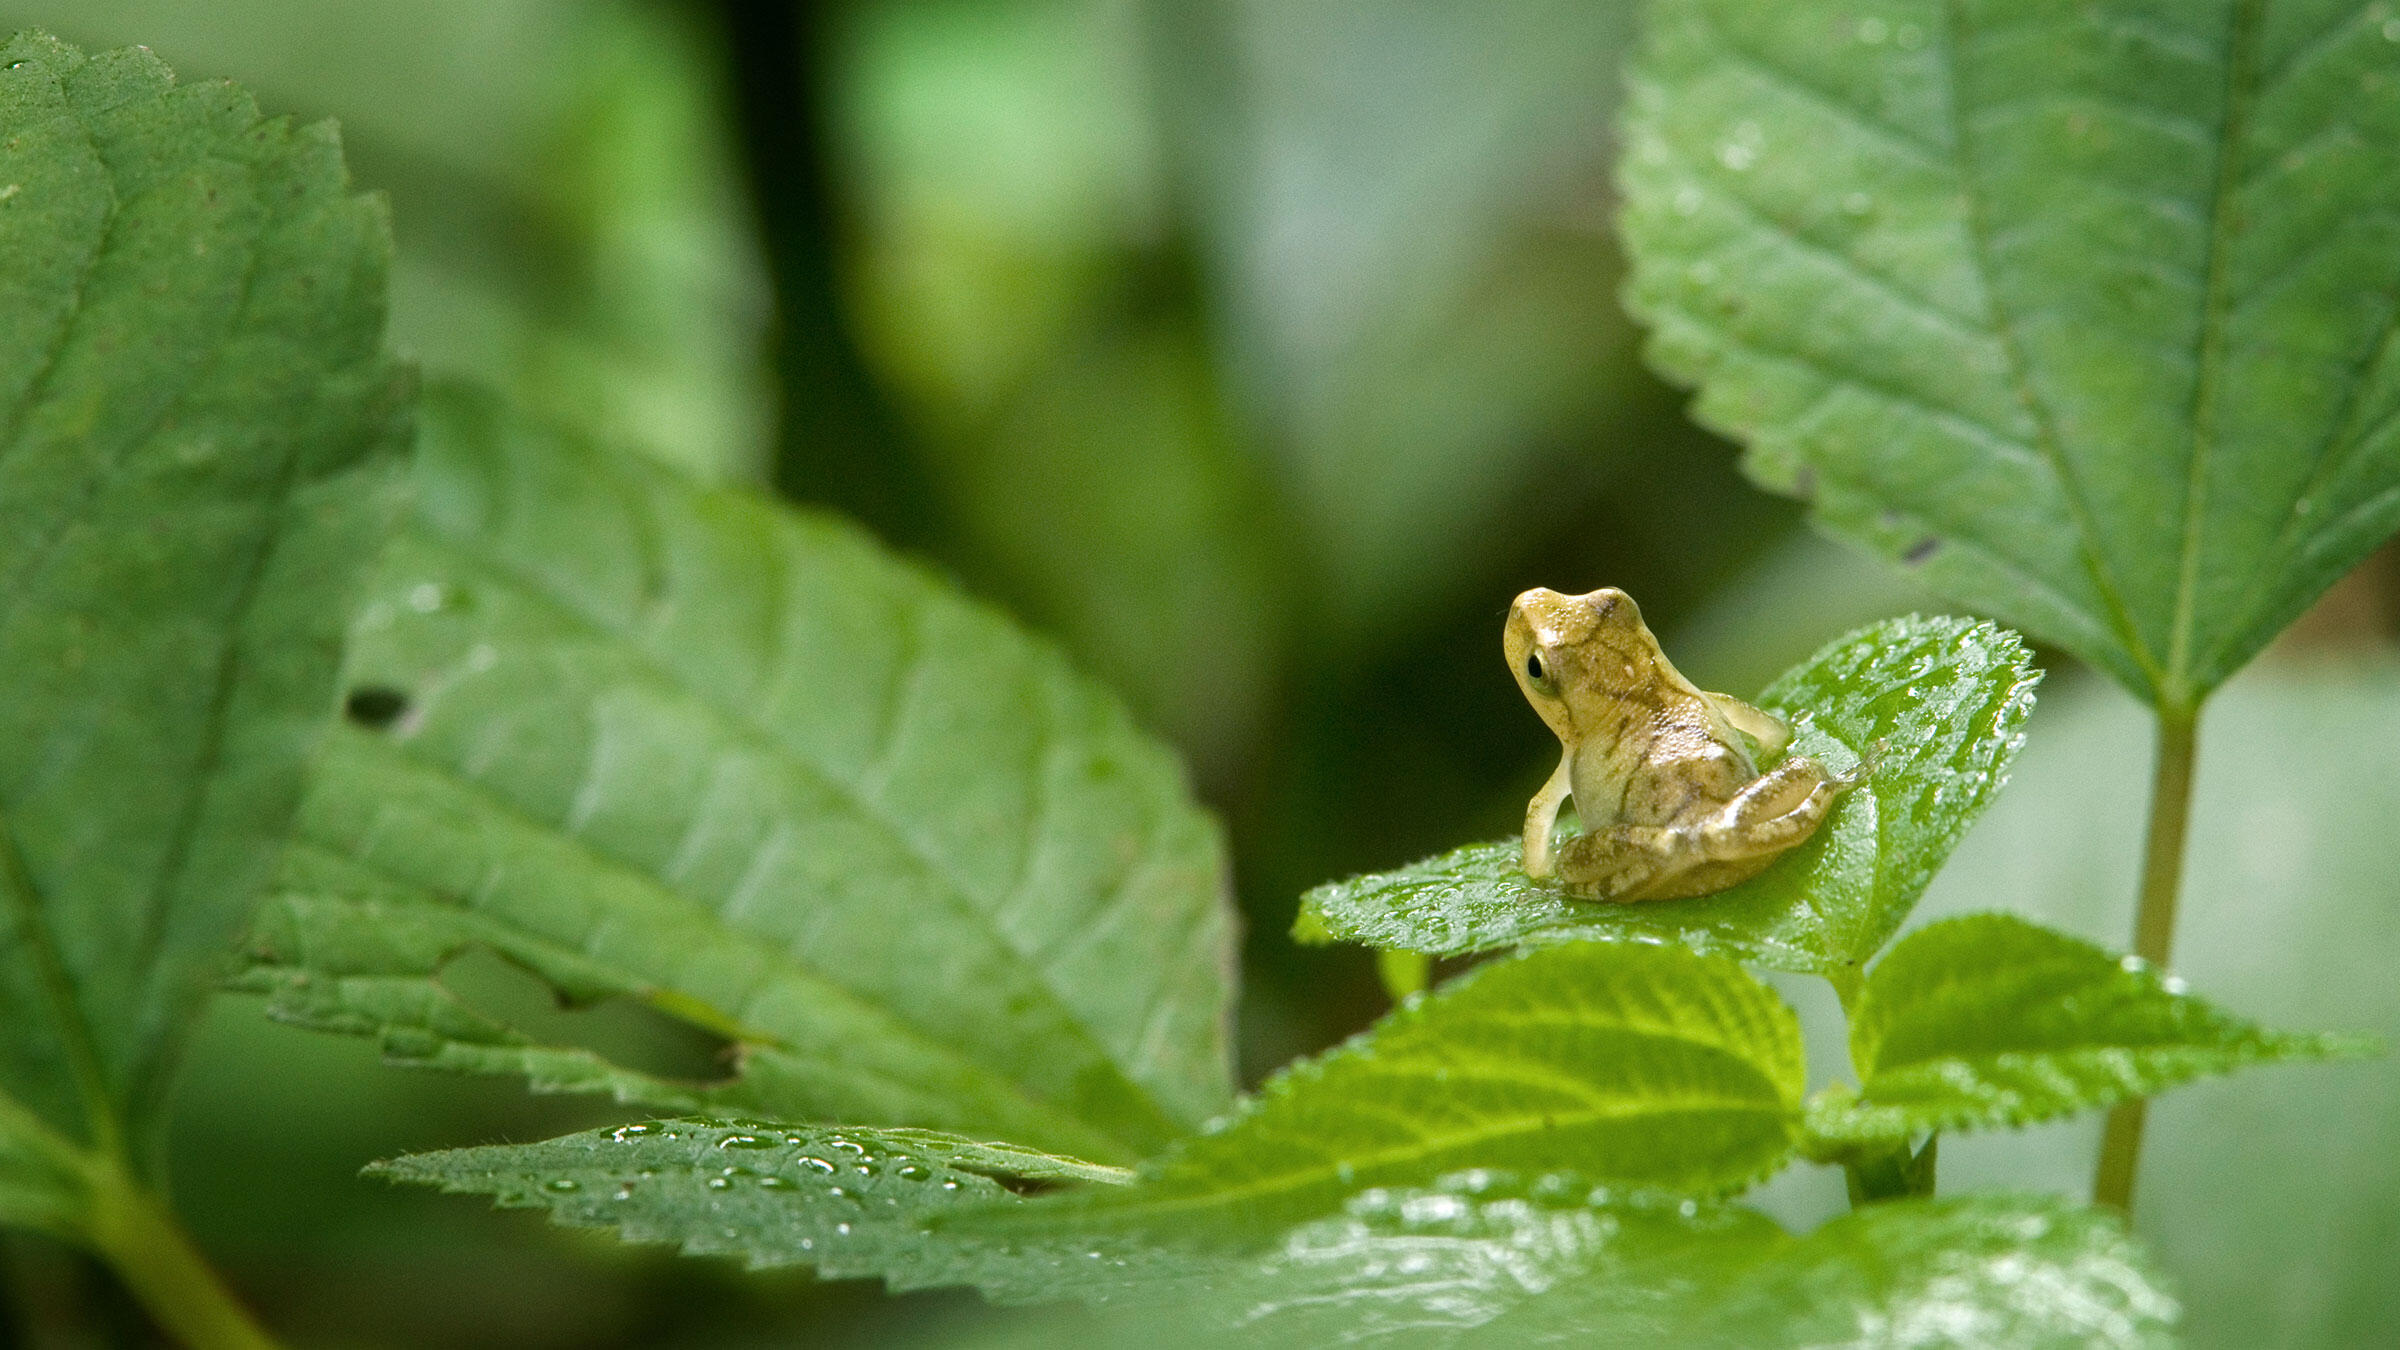 Spring peepers fill the air around ponds with their pulsing, Twilight Zone-like songs. Caution: You might want to bring some protective gear for your ears when checking these guys out. Clay Bolt/Minden Pictures